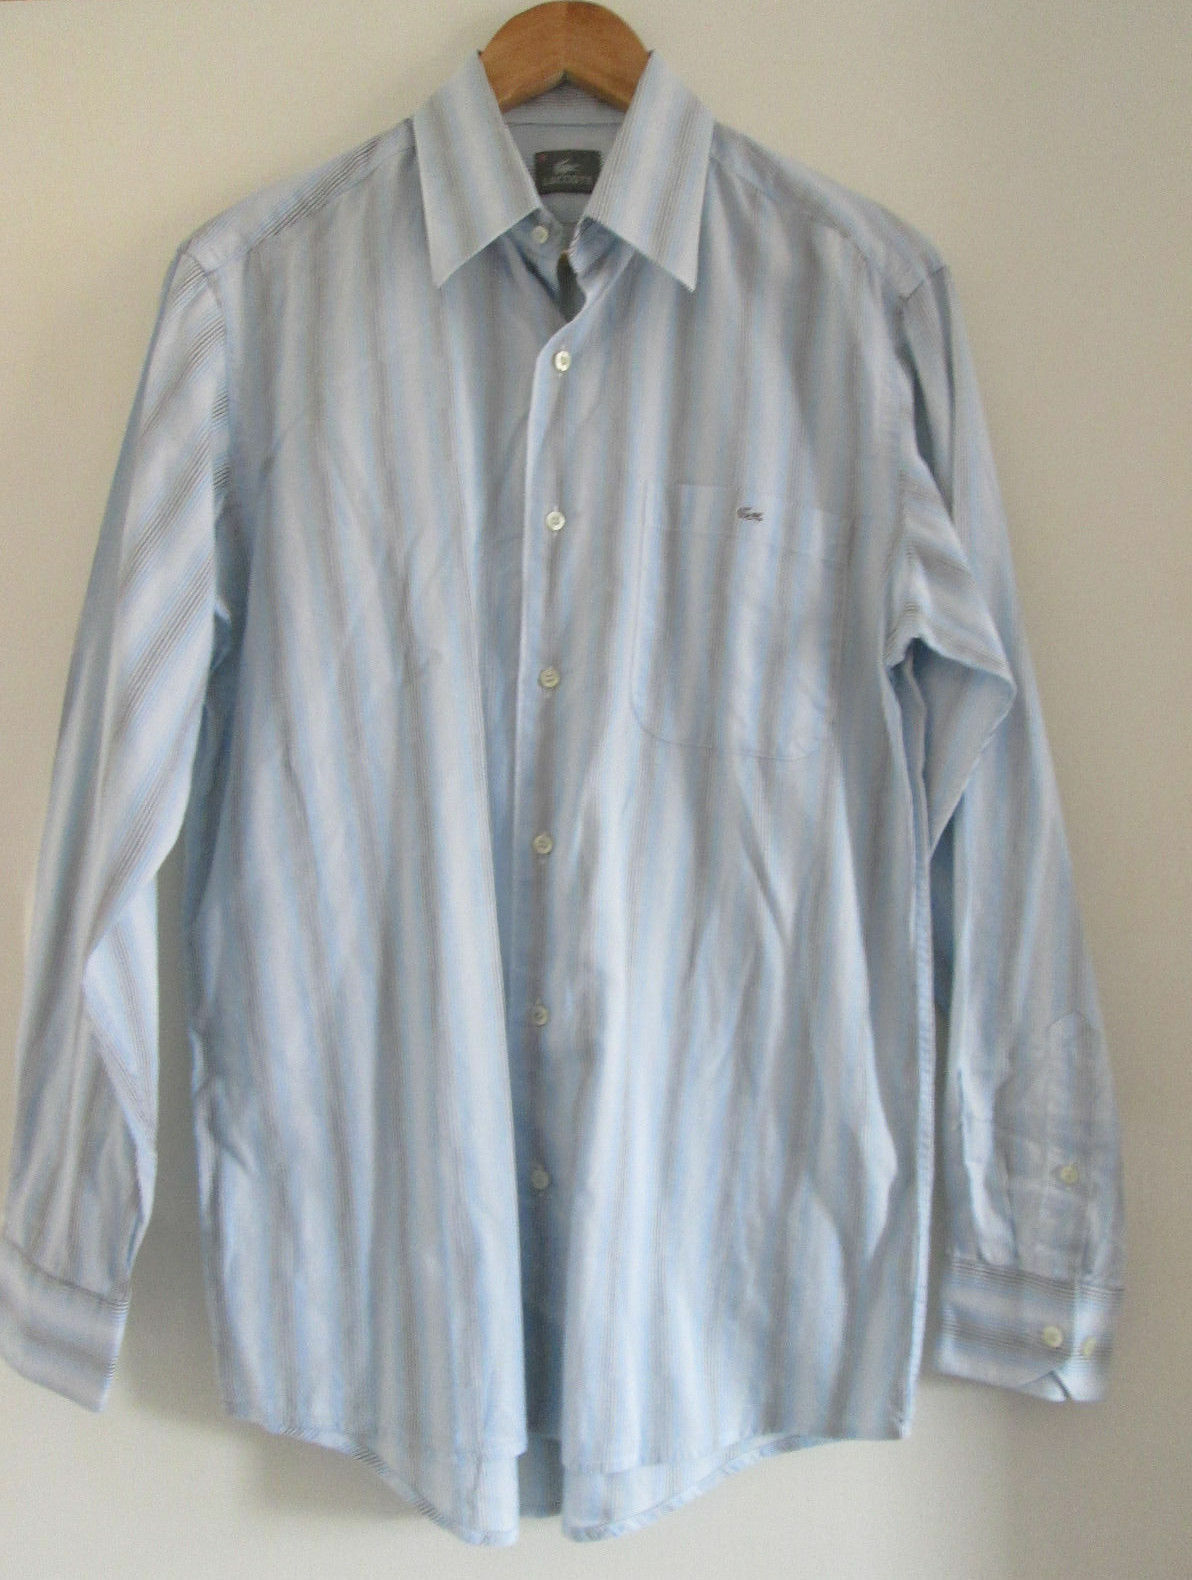 Mens LACOSTE blueE COTTON STRIPED SHIRT SIZE 40